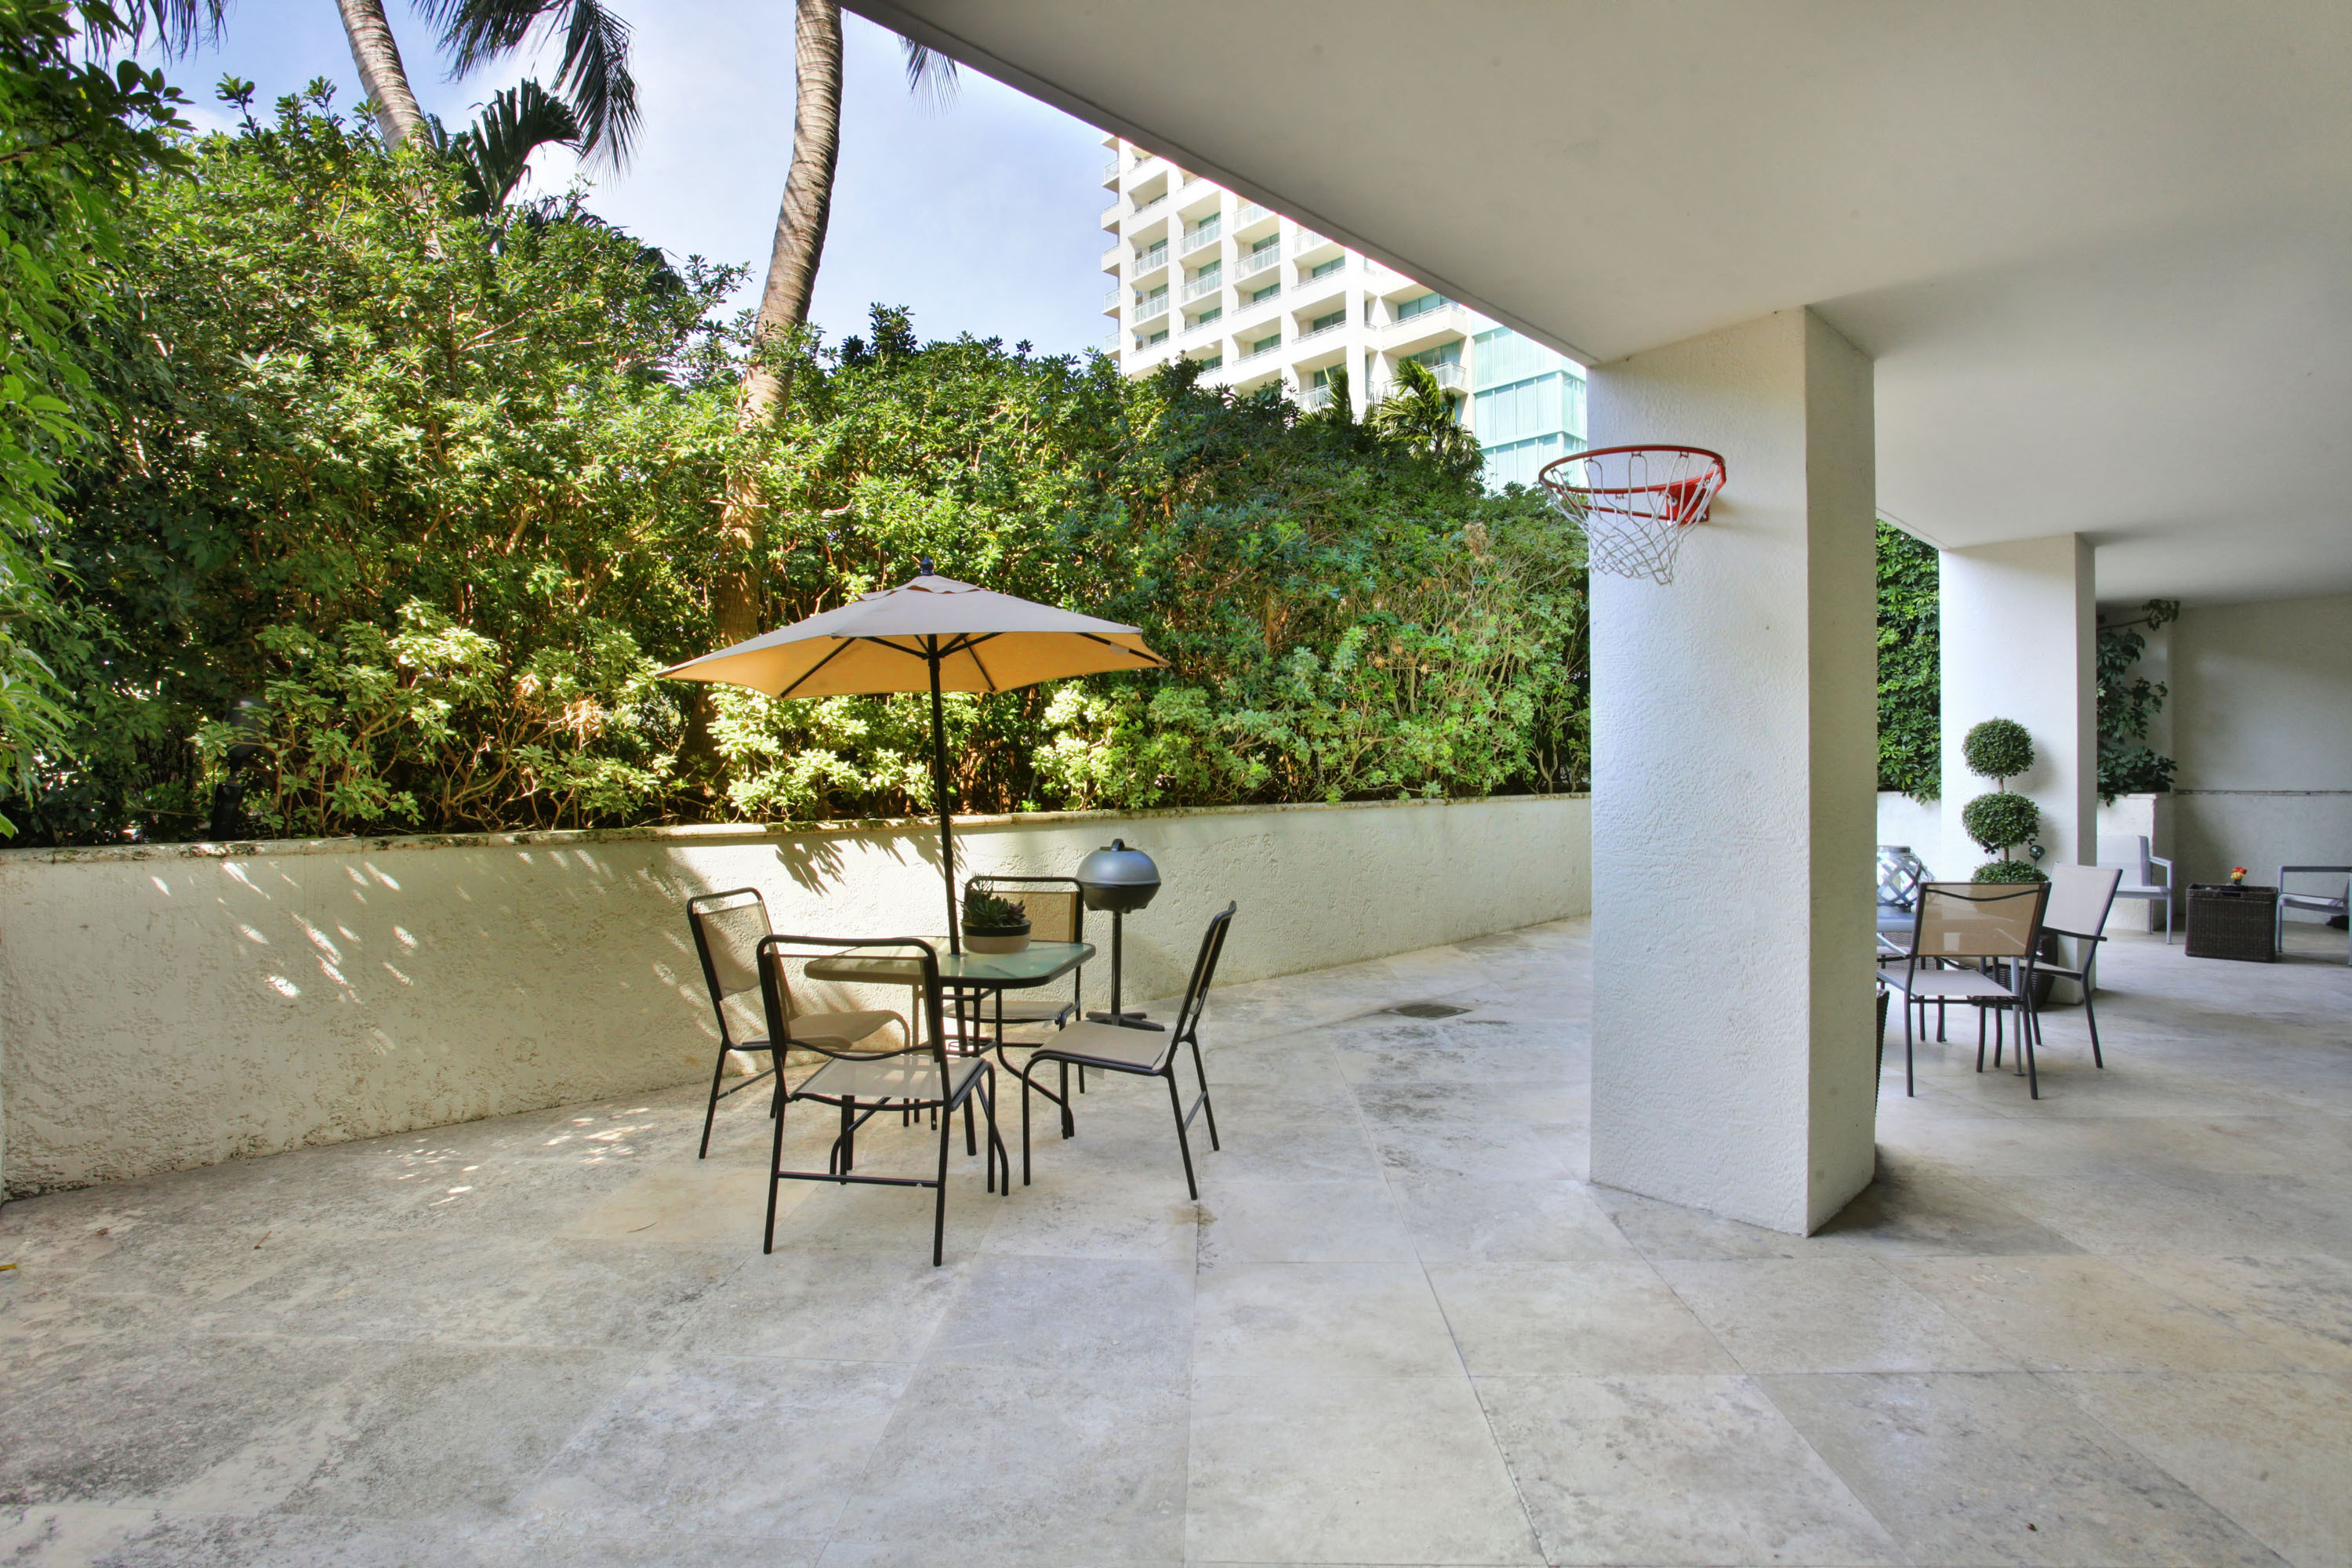 Condominium for Sale at 3400 Sw 27 Av #207 3400 Sw 27 Av 207 Coconut Grove, Florida, 33133 United States